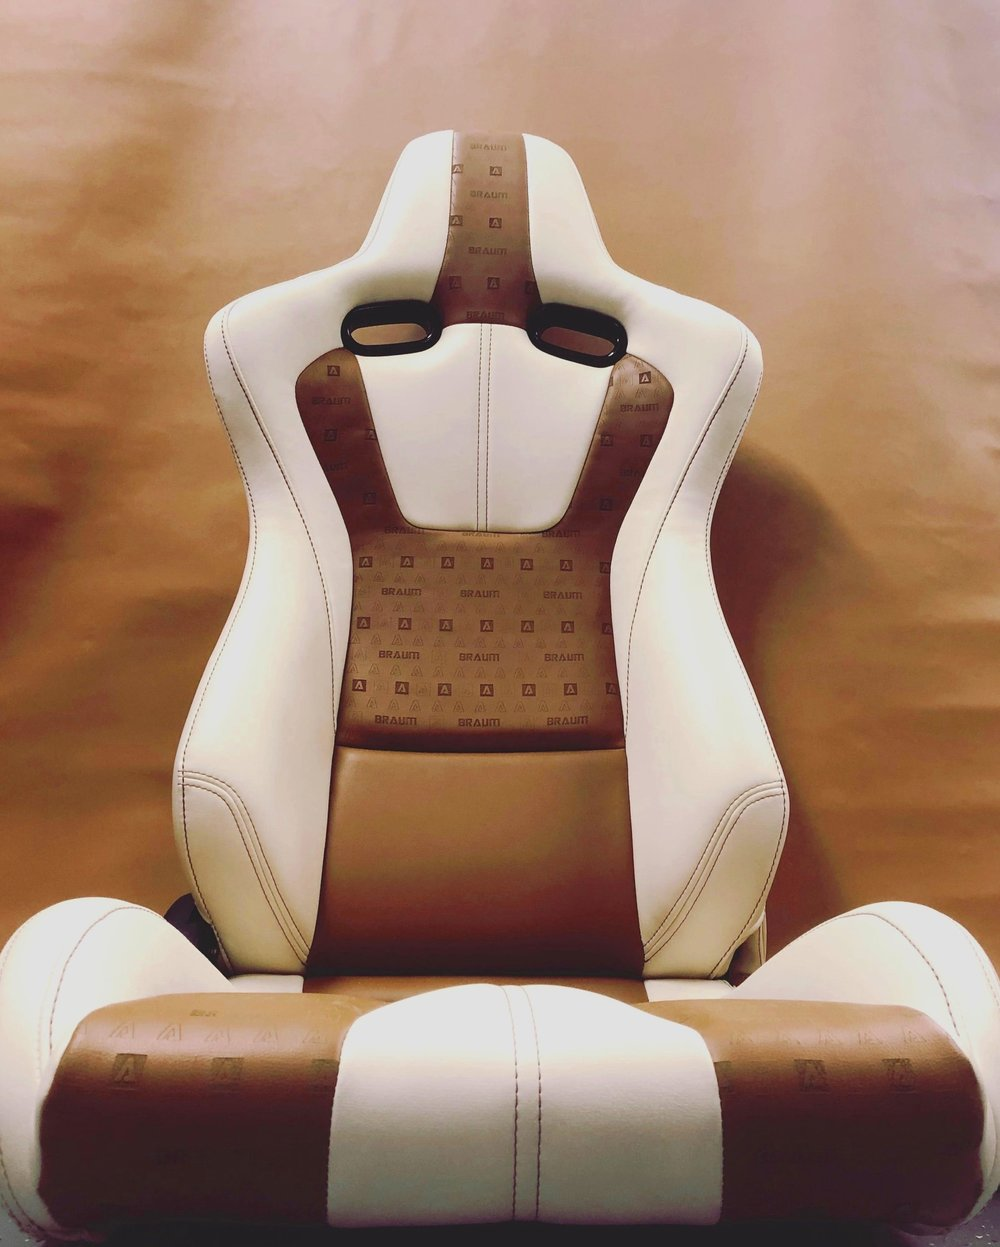 NW Crafted can install a custom seat cover to help you with your aftermarket look.